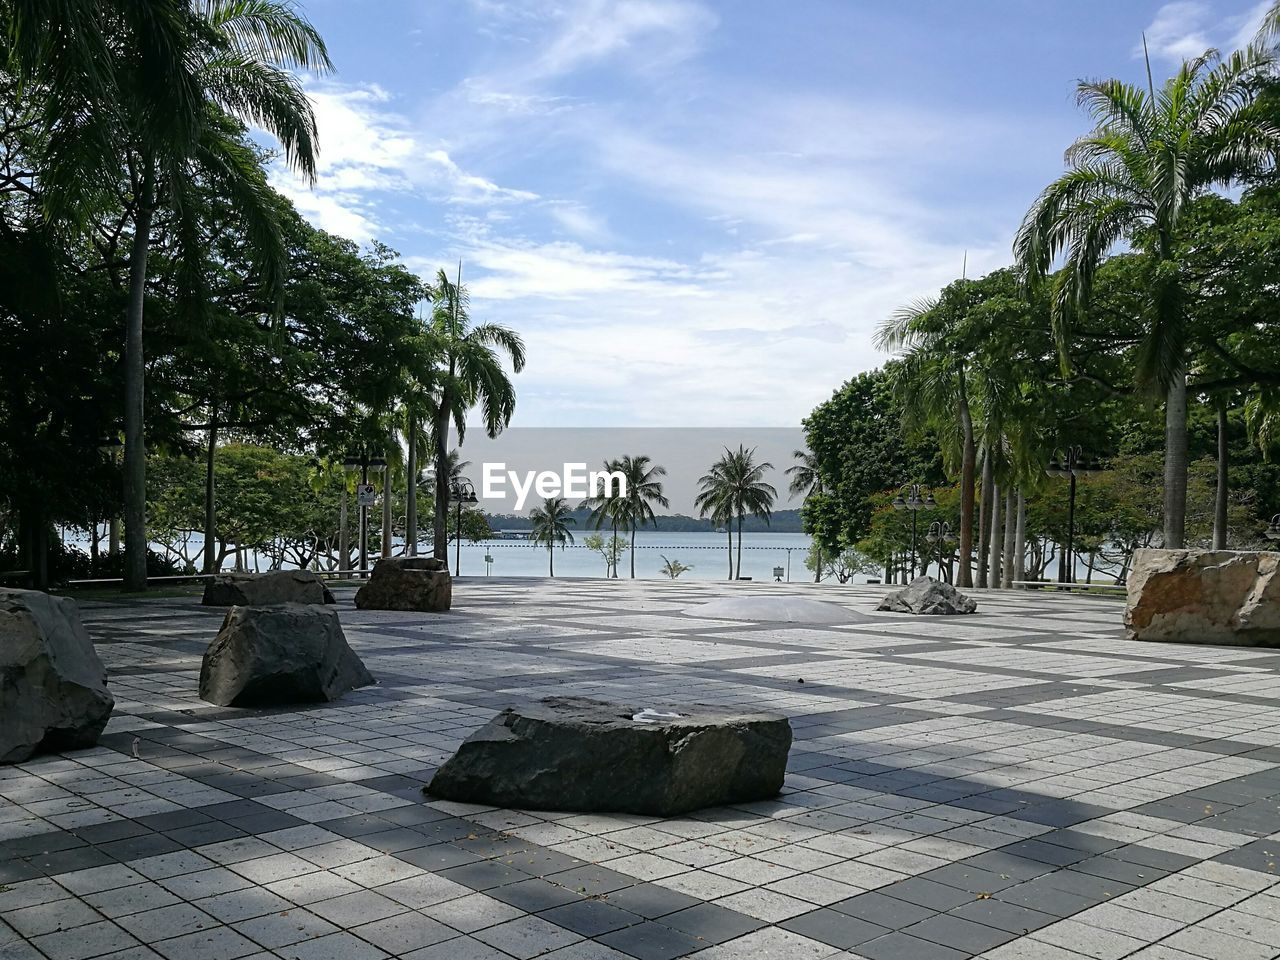 tree, sky, cloud - sky, palm tree, day, no people, outdoors, water, tourist resort, tranquility, sunlight, swimming pool, scenics, nature, travel destinations, luxury, vacations, architecture, beauty in nature